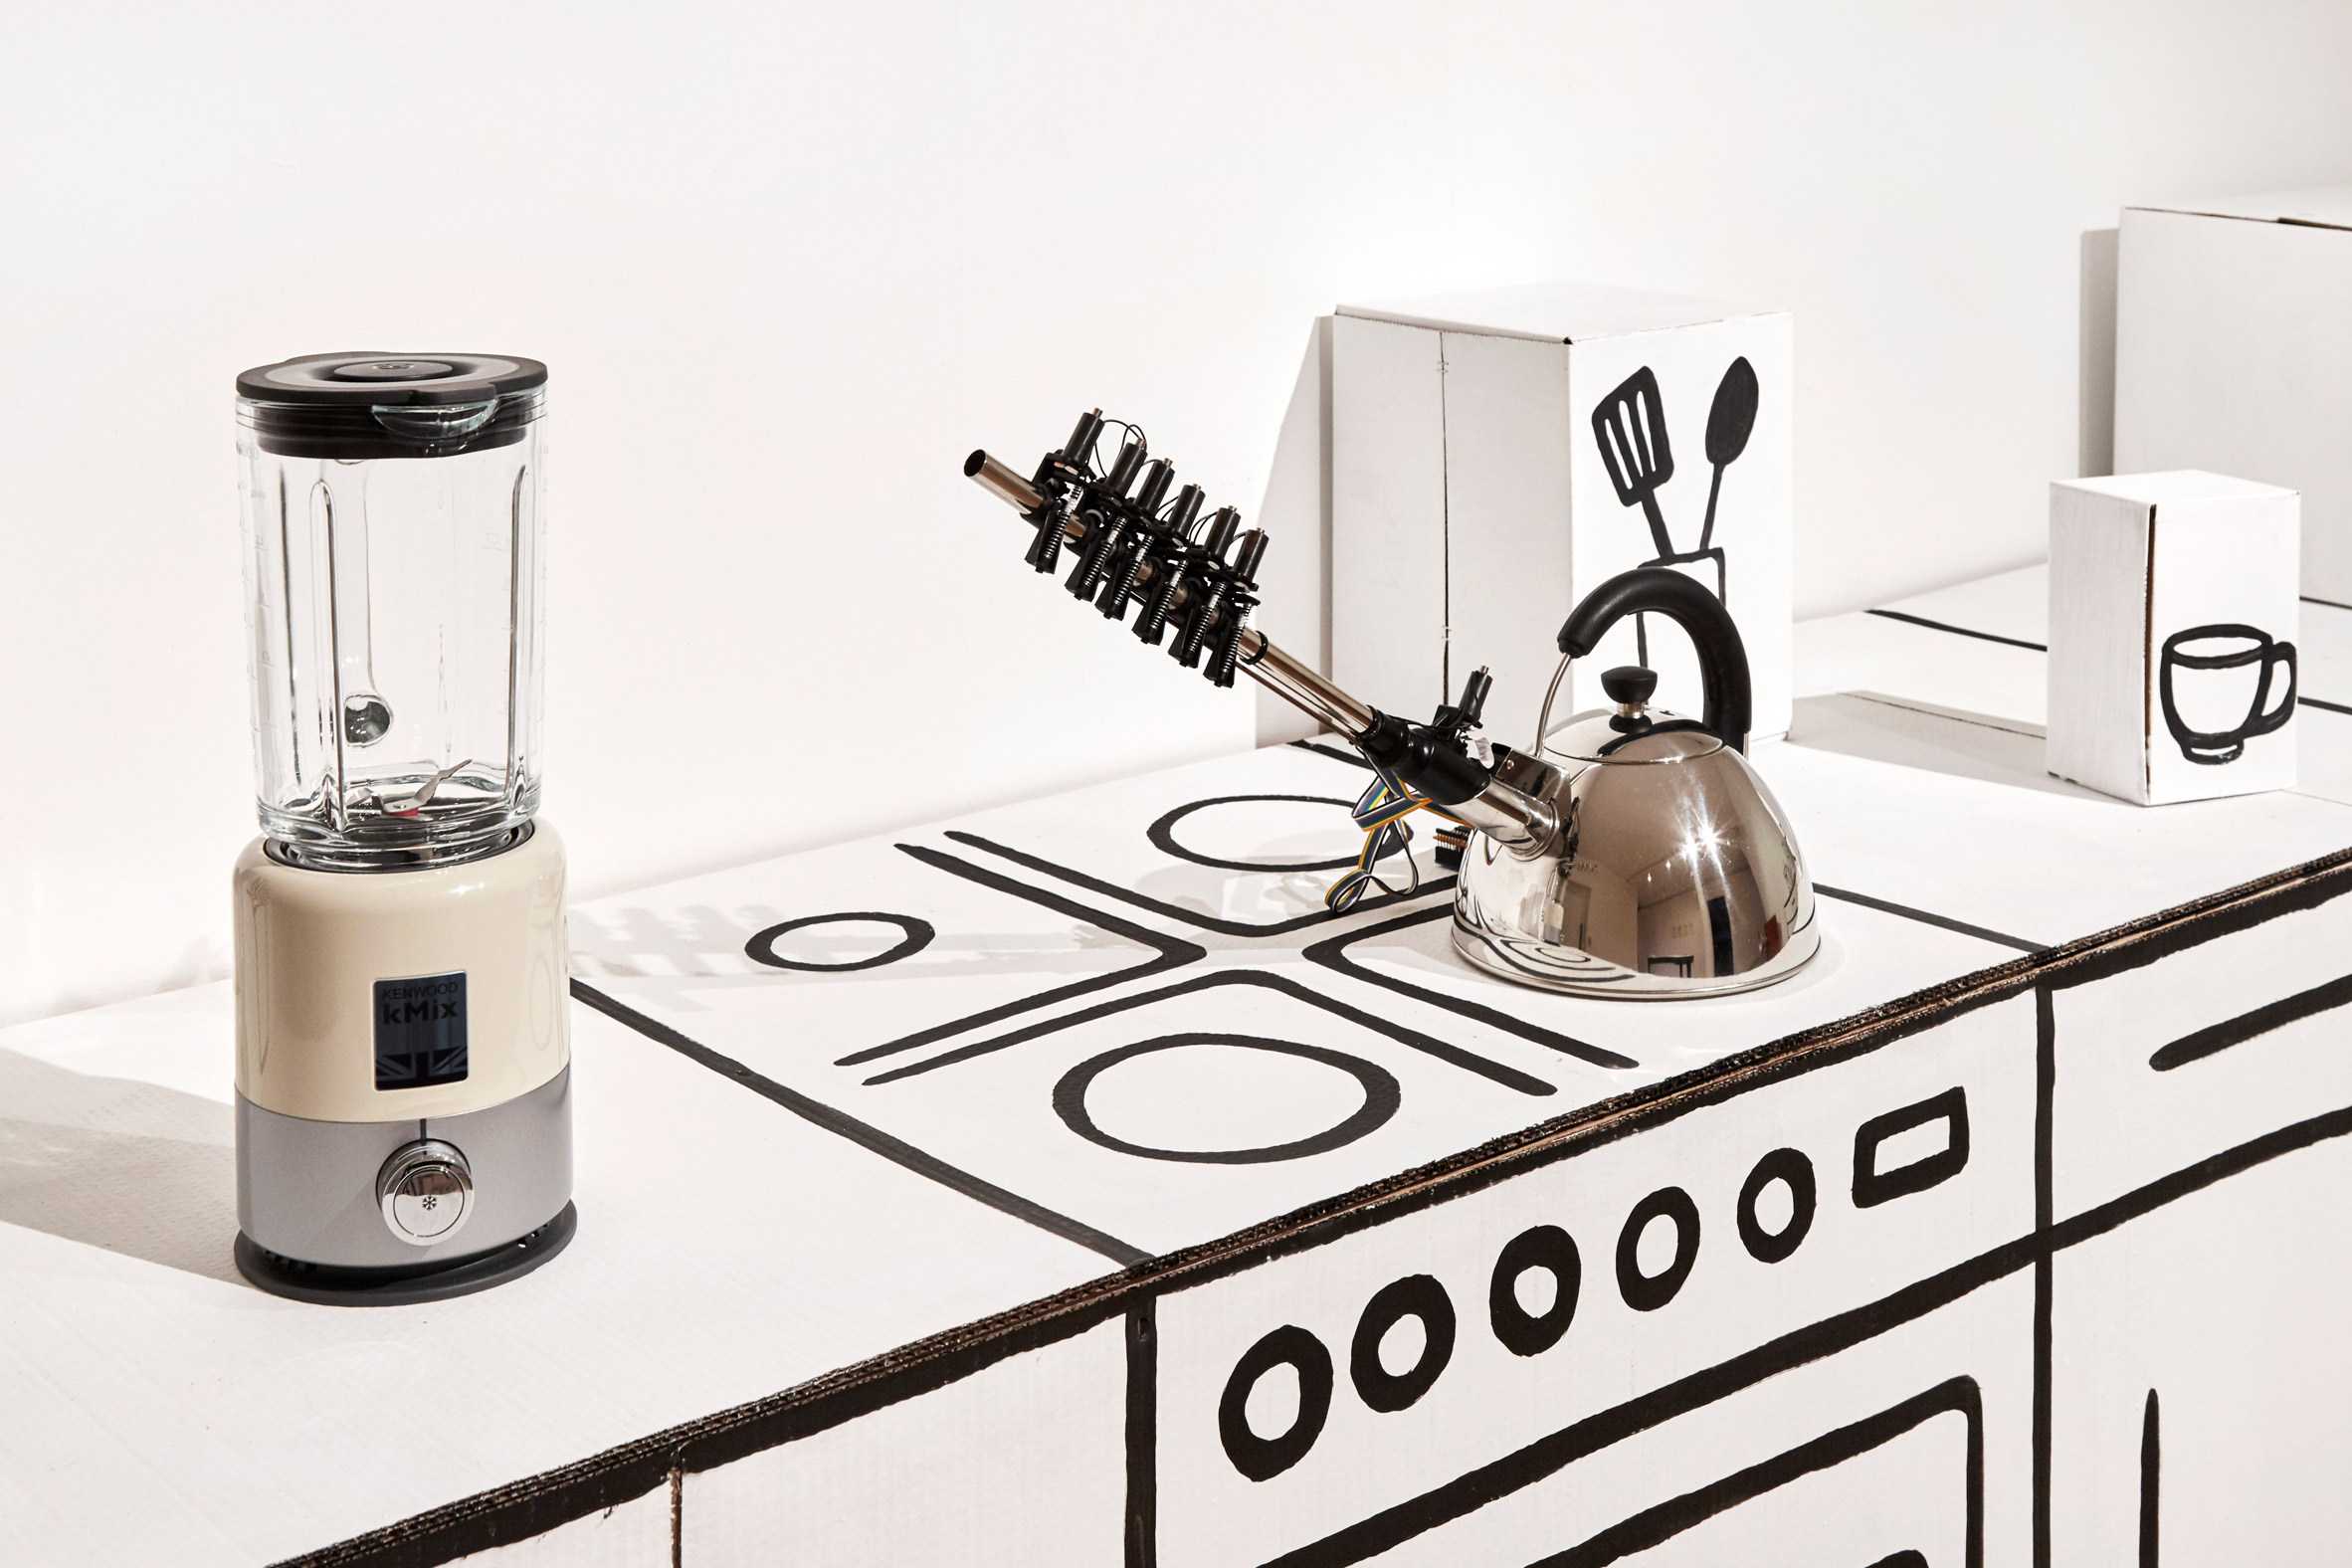 Yuri Suzuki's musical appliances are designed to enhance your mood